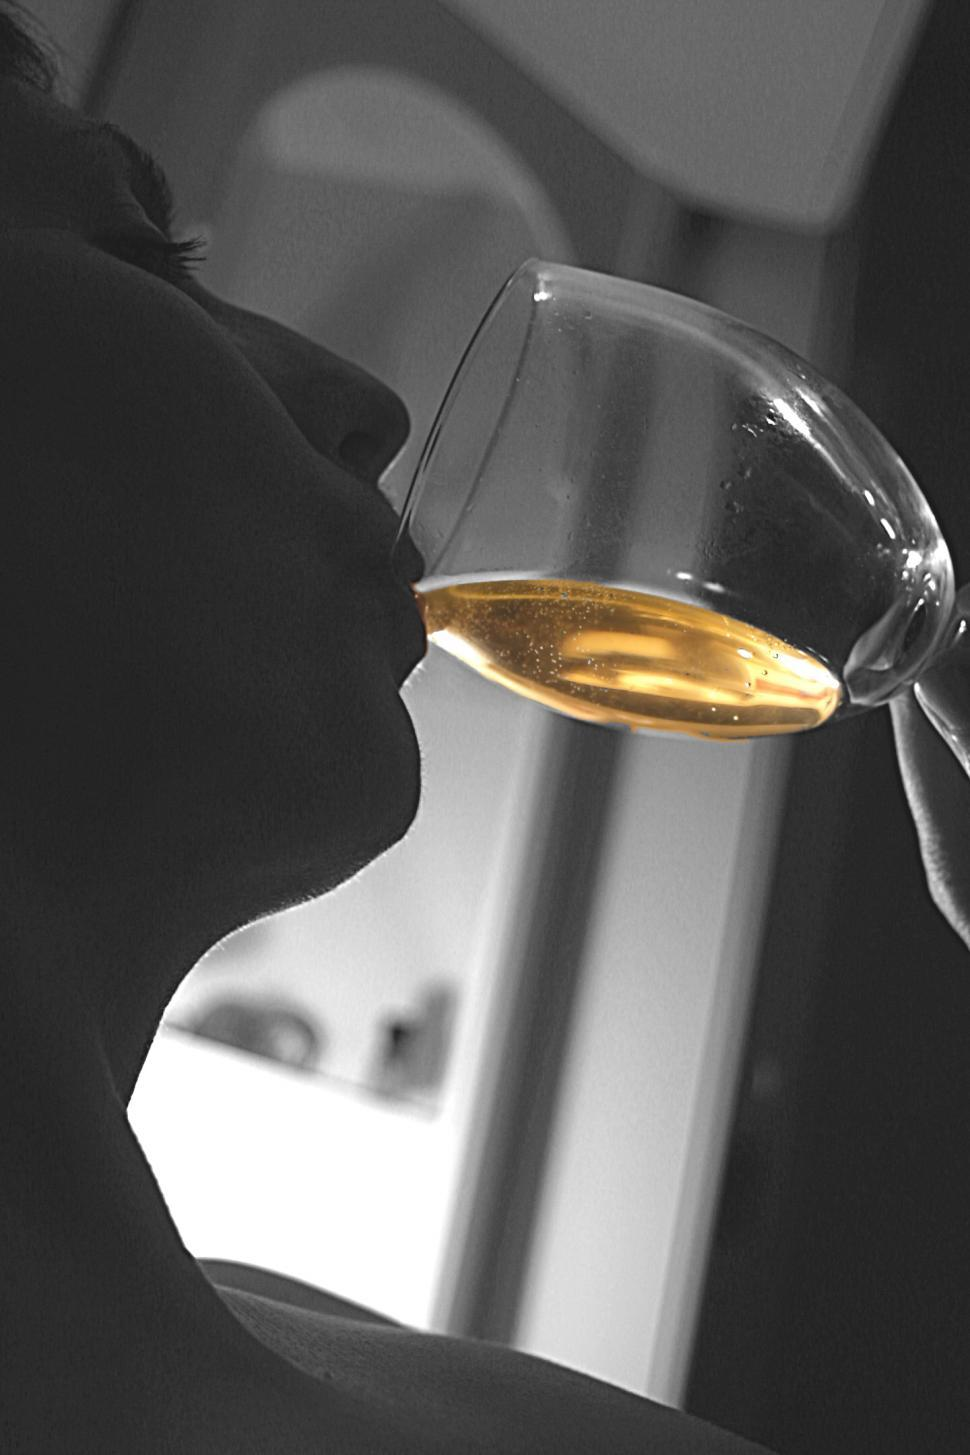 Free image of Enjoying a glass of wine is always a pleasure.